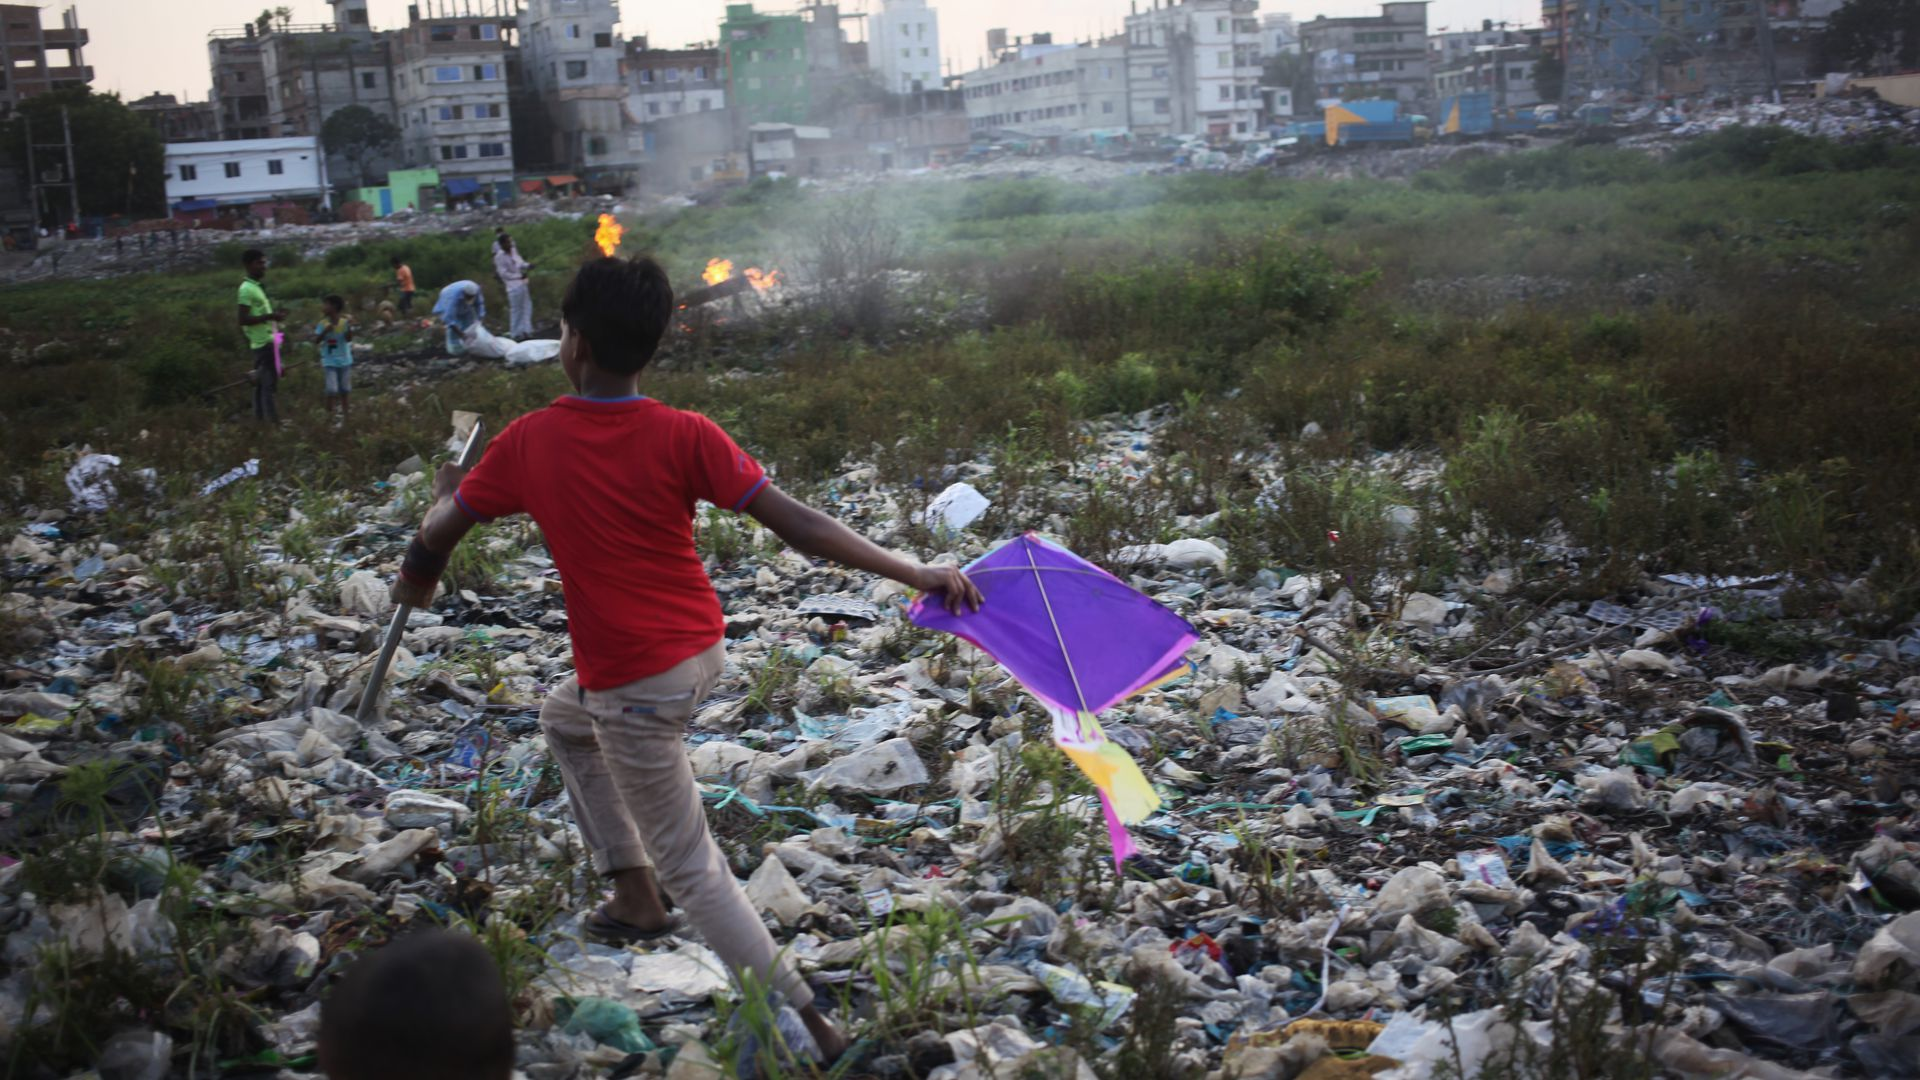 In this image, a boy in a bright shirt carries a kite while running over a field of garbage.